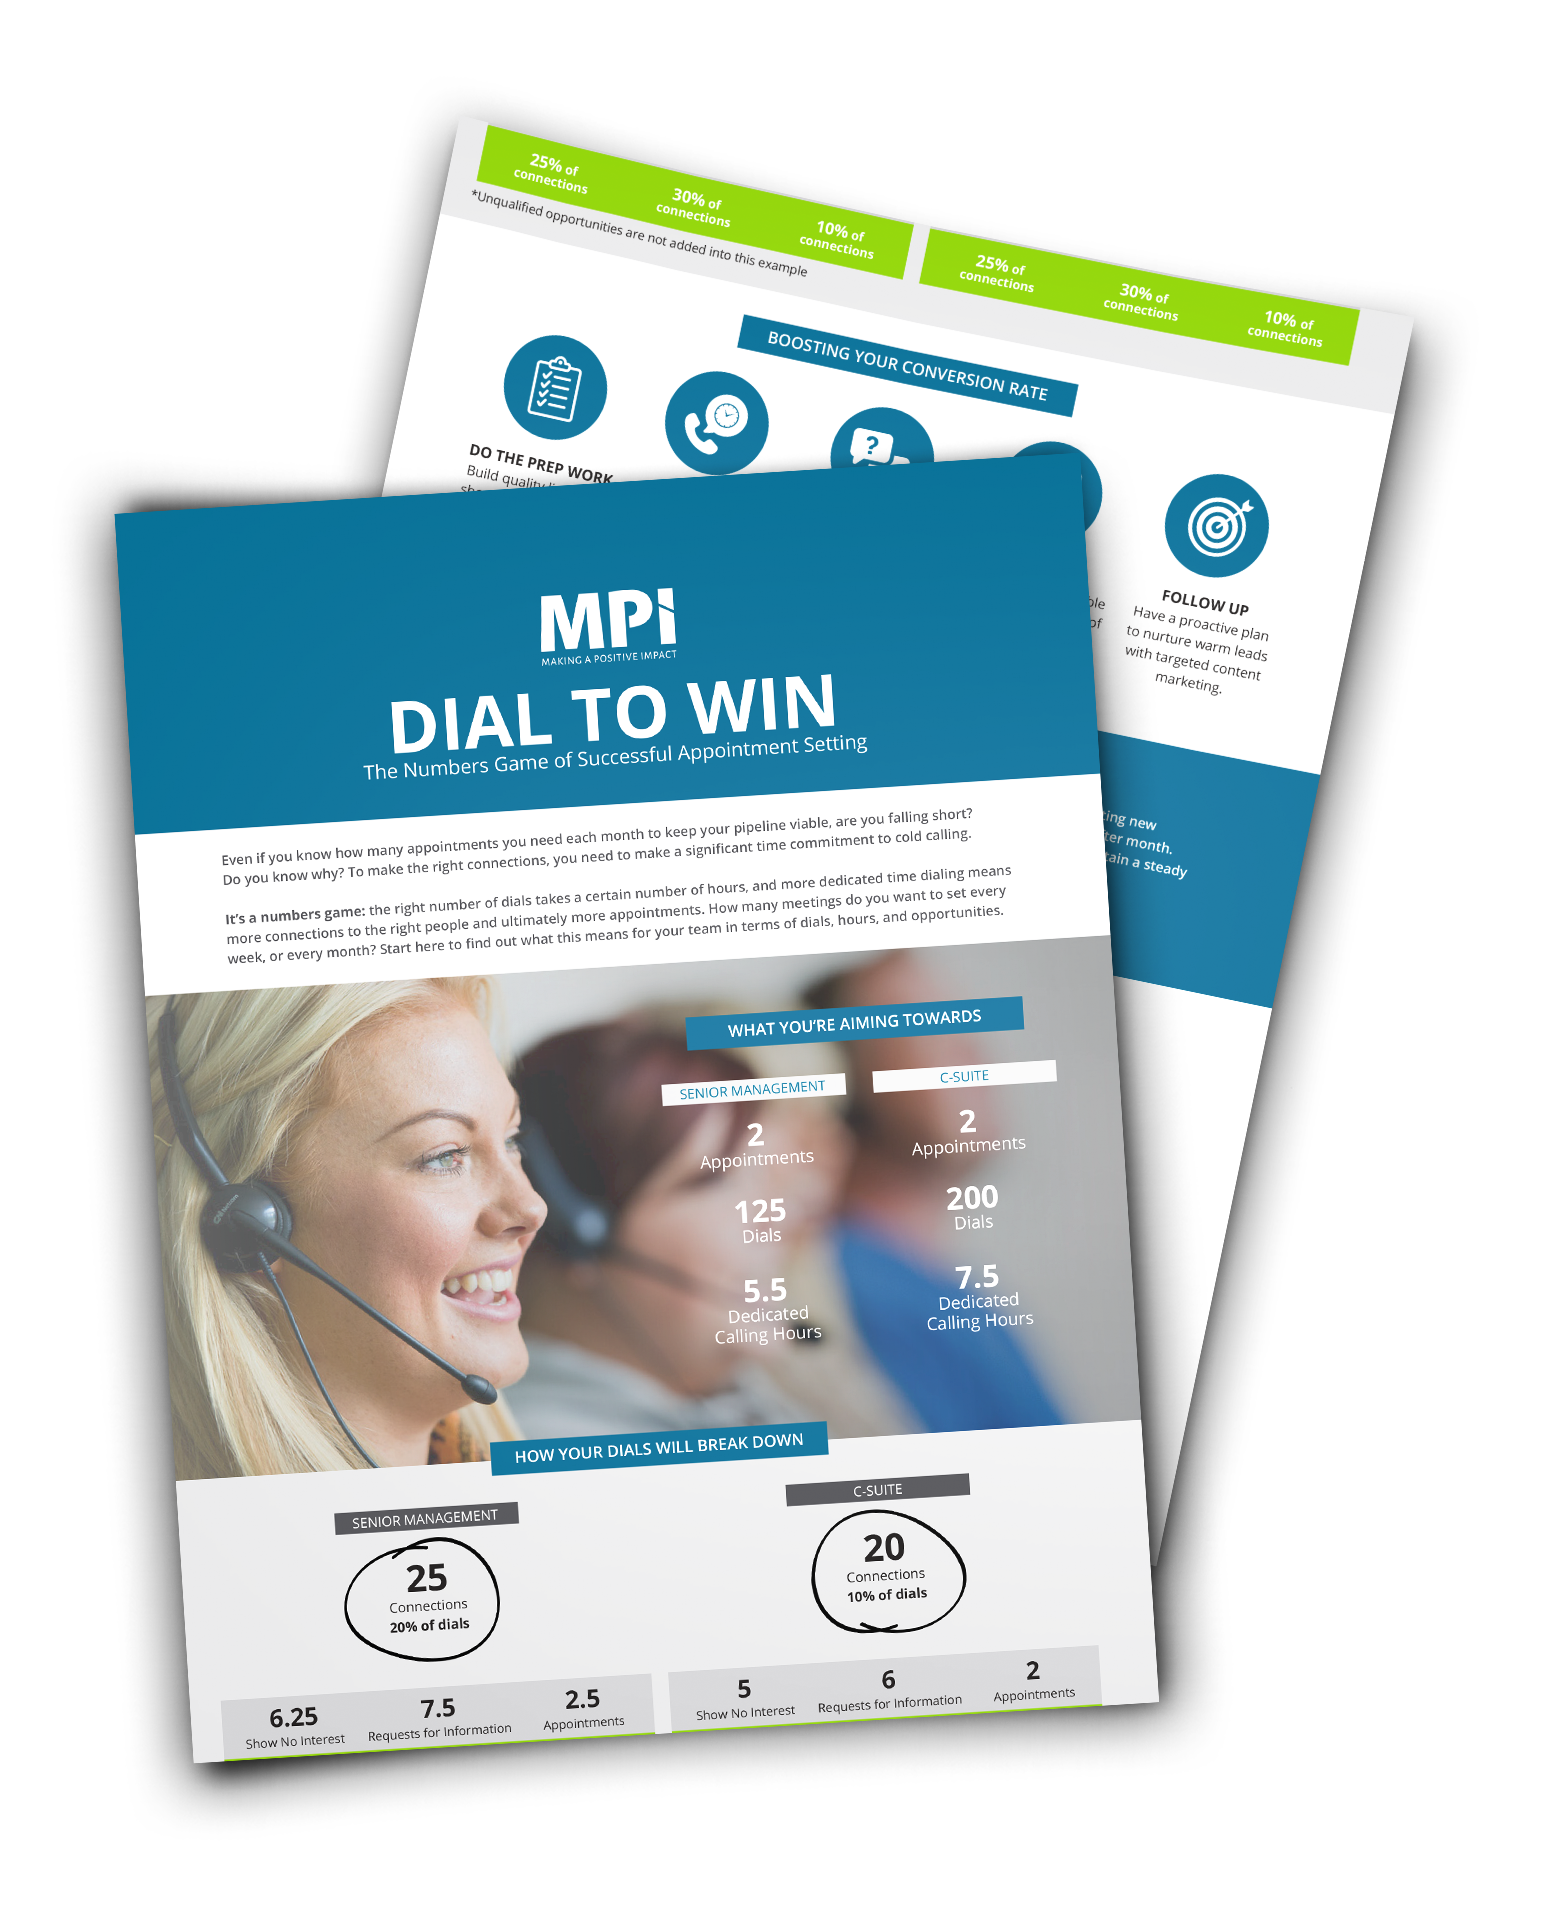 Dial to win: The Numbers game of Successful Appointment Setting